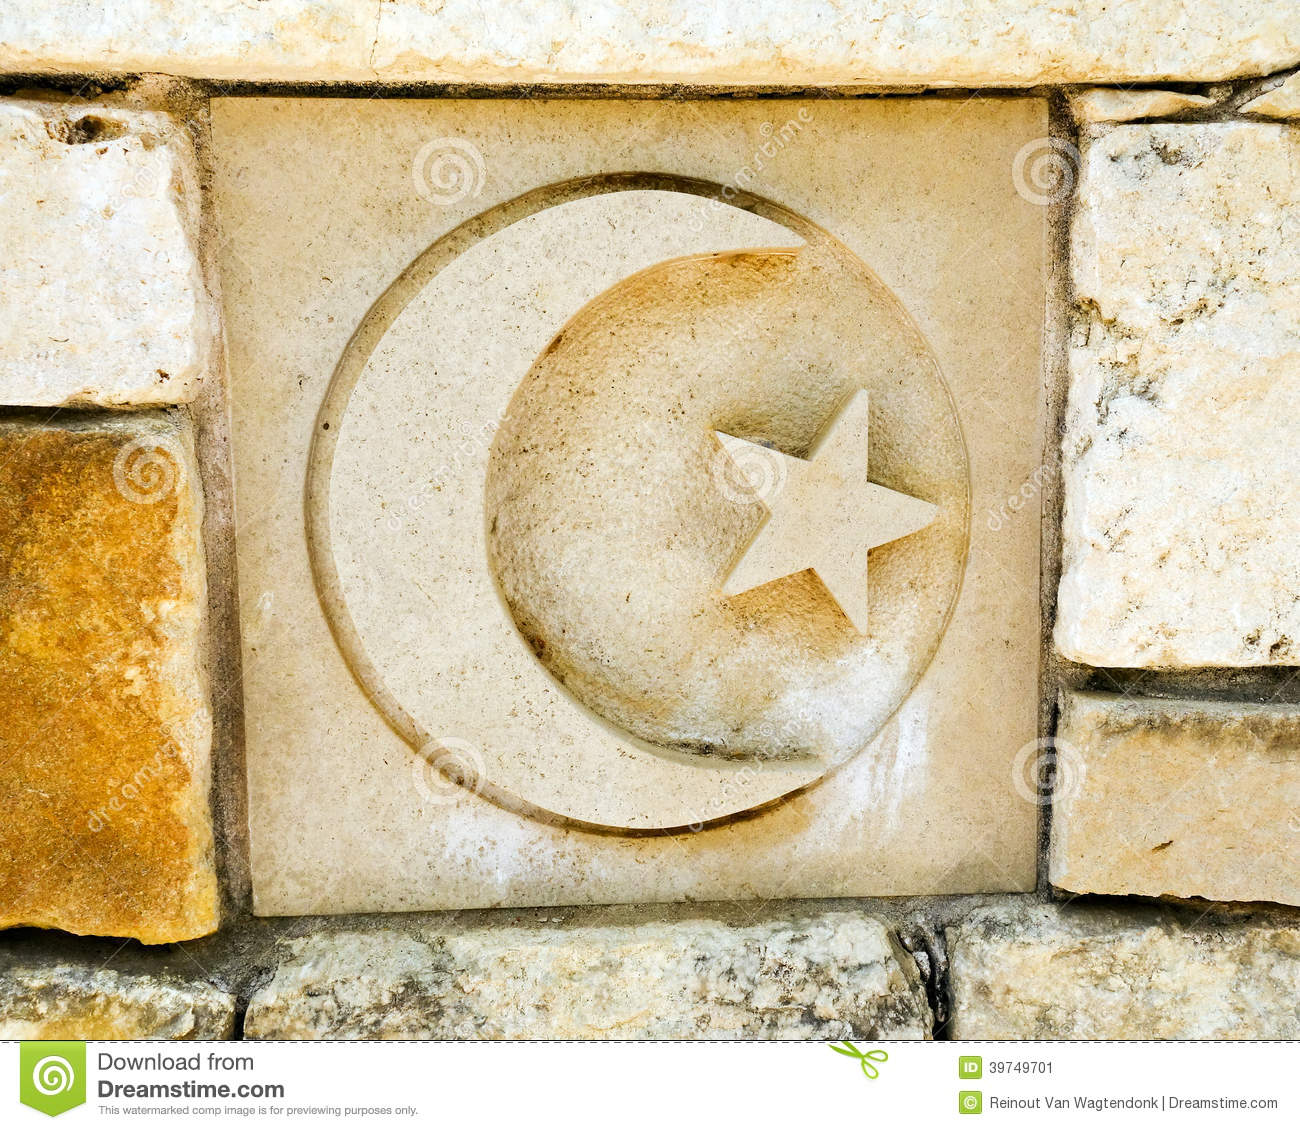 Islam Stock Photos Download 187488 Images